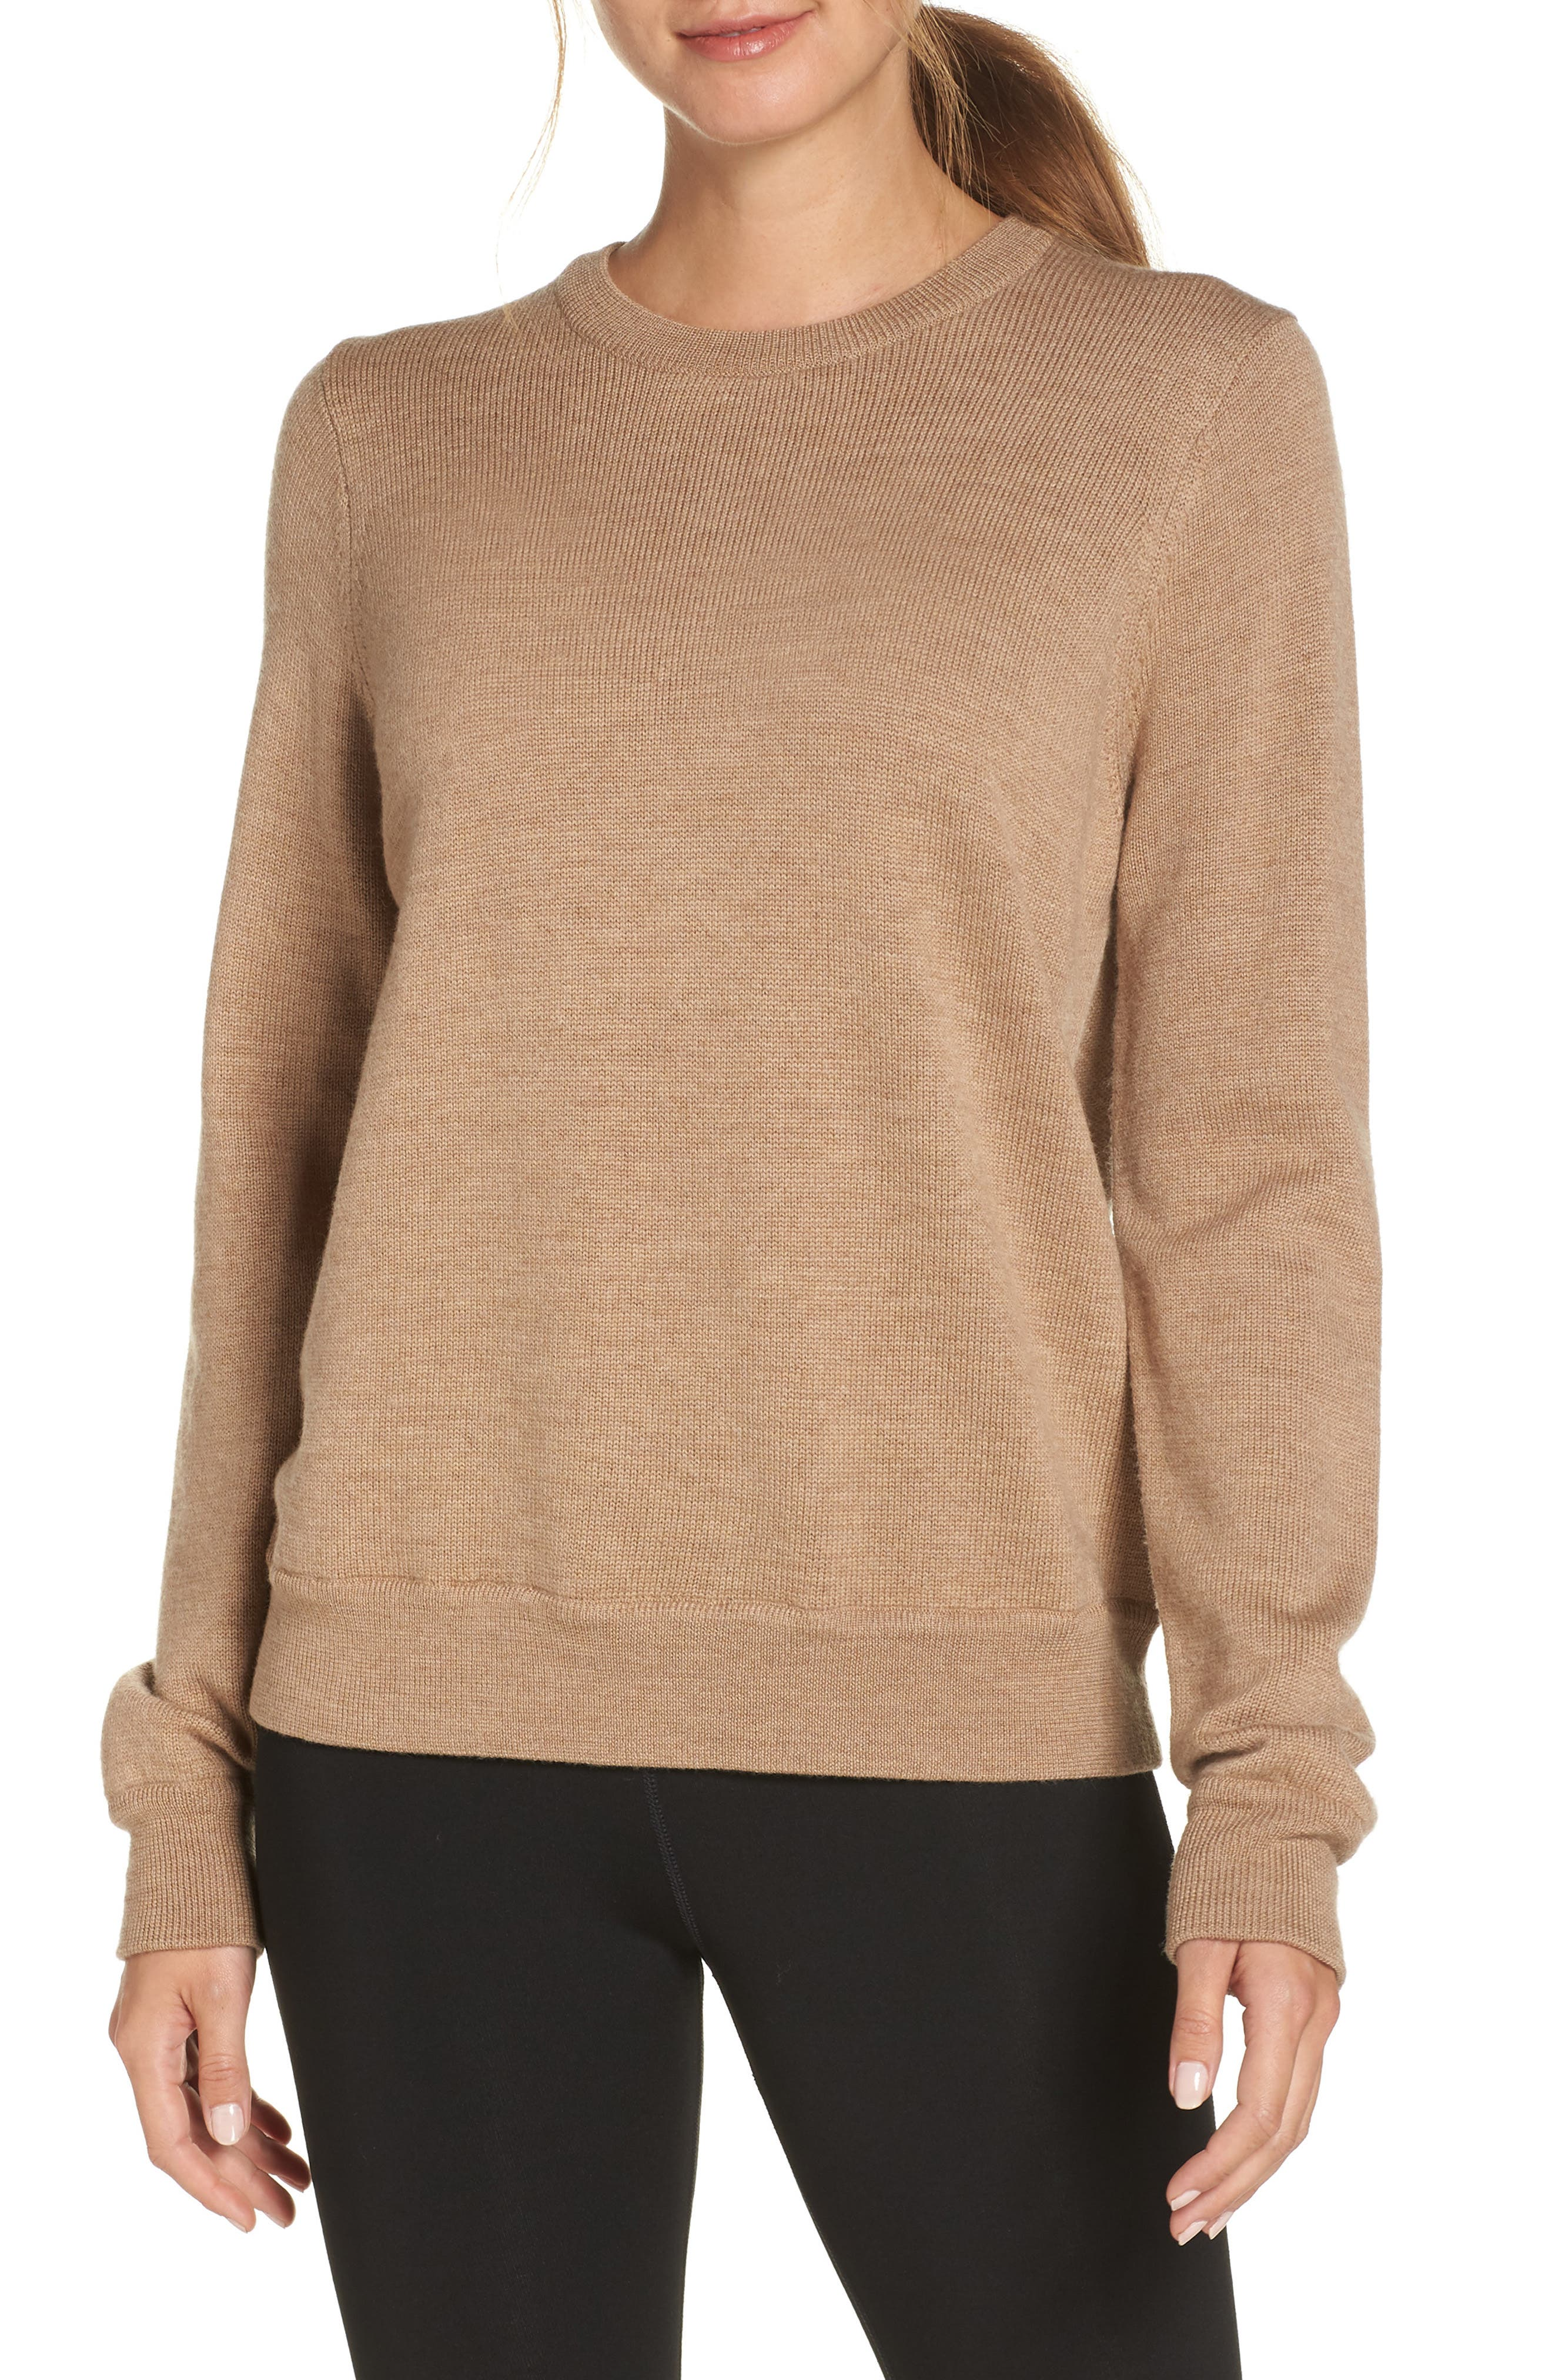 Muster Merino Wool Sweater,                             Main thumbnail 1, color,                             CAMEL HEATHER